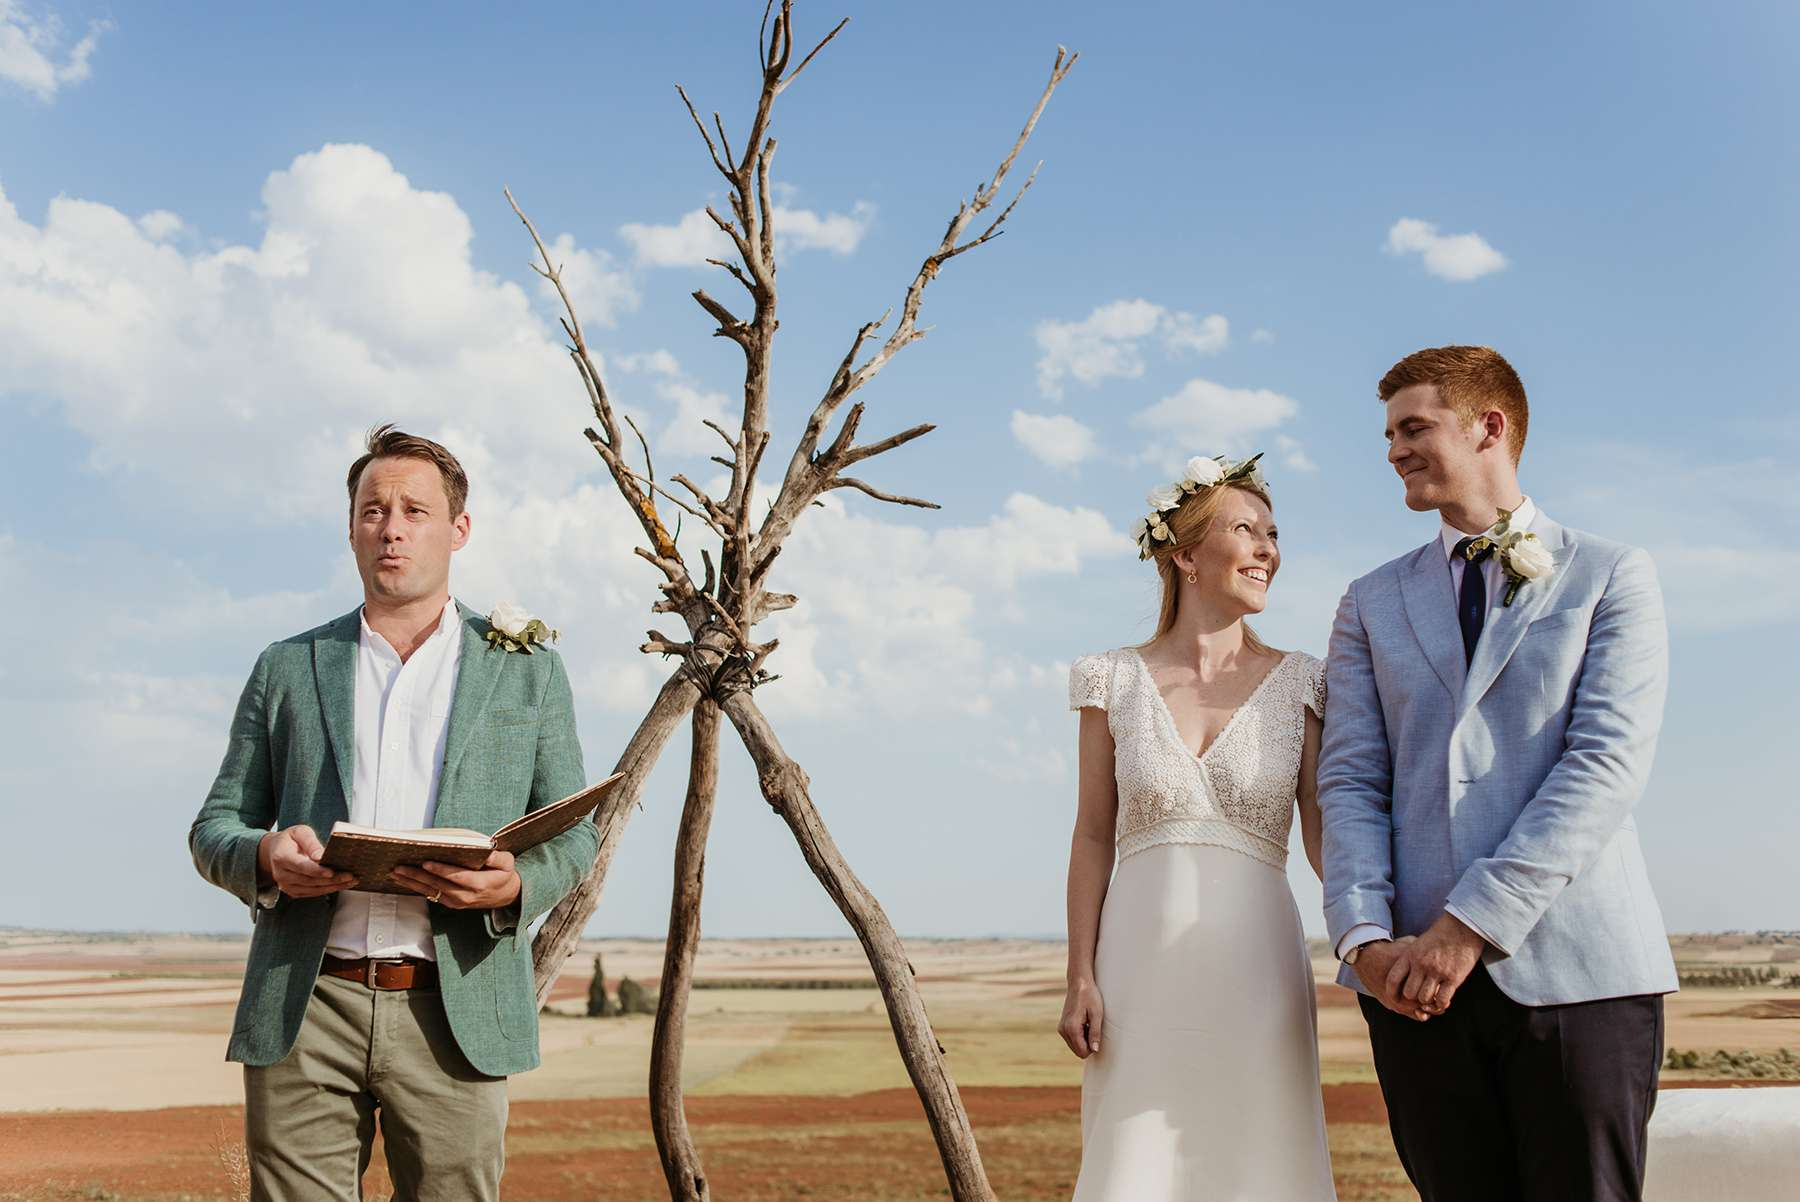 <p>Bride and groom with officiant</p><br><br>